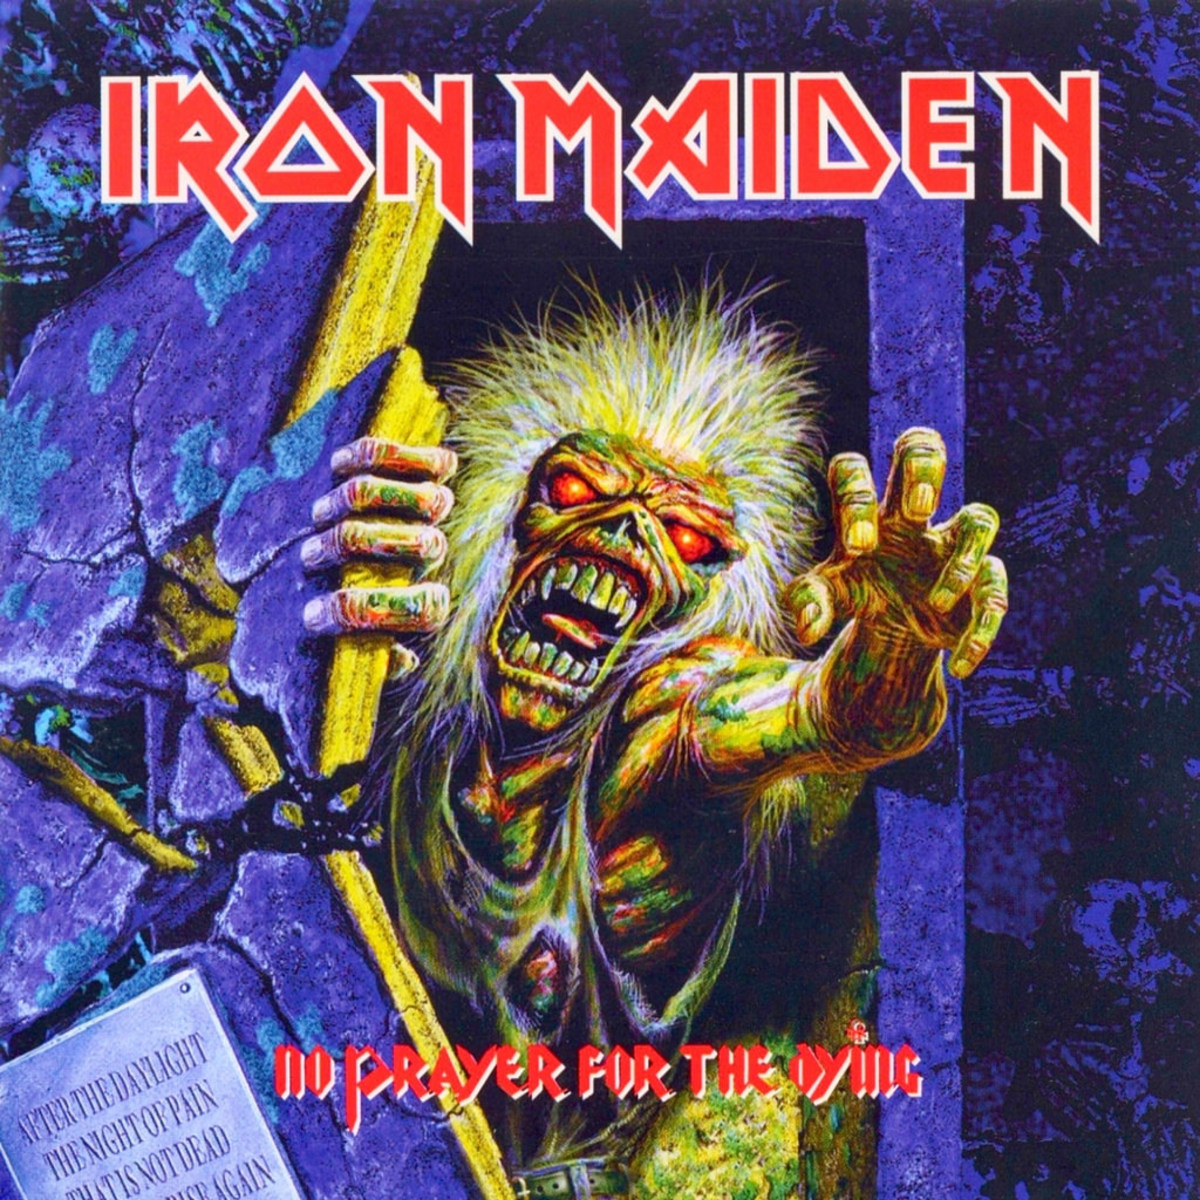 "Iron Maiden ""No Prayer for the Dying"" E 46905  12"" LP Vinyl Record (1998) Album Cover Art by Derek Riggs - Alternate Cover"